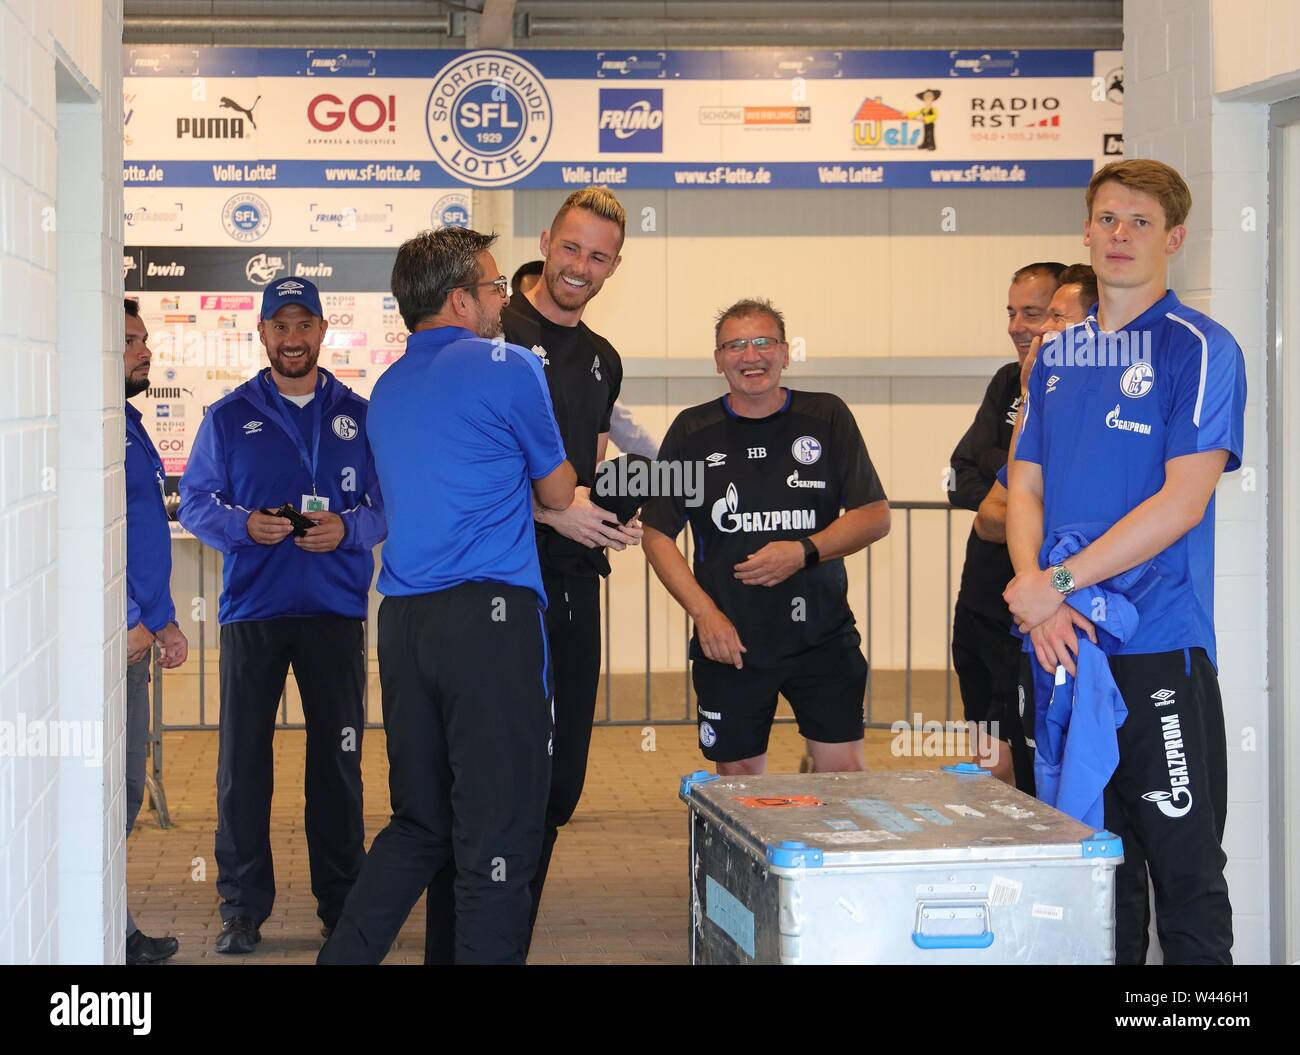 Lotte, Deutschland. 19th July, 2019. firo: 19.07.2019, football, 1.Bundesliga, season 2019/2020, friendly match, FC Schalke 04 - Norwich City Alexander NUBEL, Schalke right and Ralf FAHRMANN, Norwich with coach David WAGNER, Schalke, before the kick-off in the catacombs | usage worldwide Credit: dpa/Alamy Live News - Stock Image